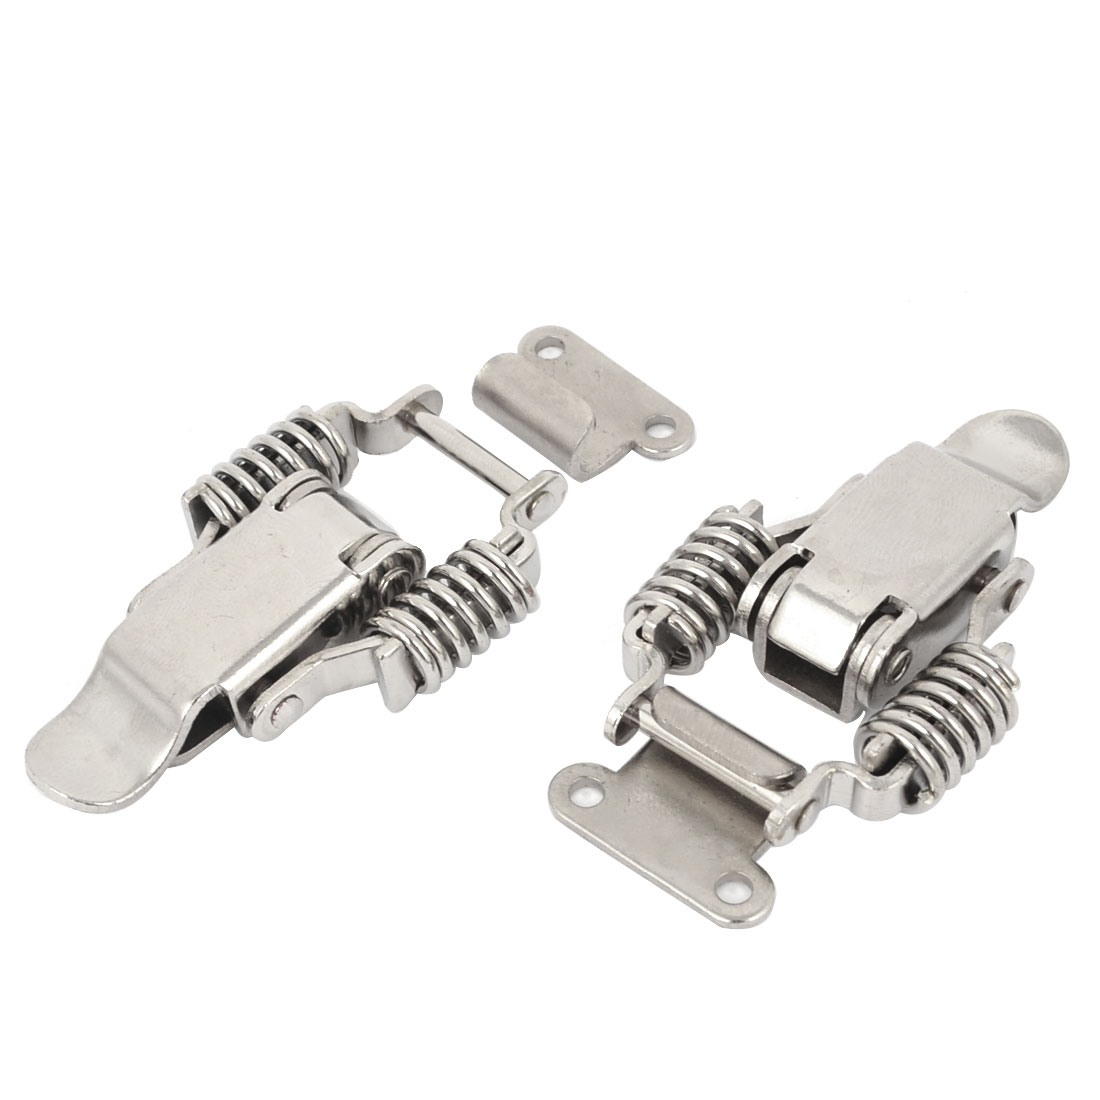 Marine Compression Spring Metal Tensioning Suitcase Draw Latch 2 Pcs